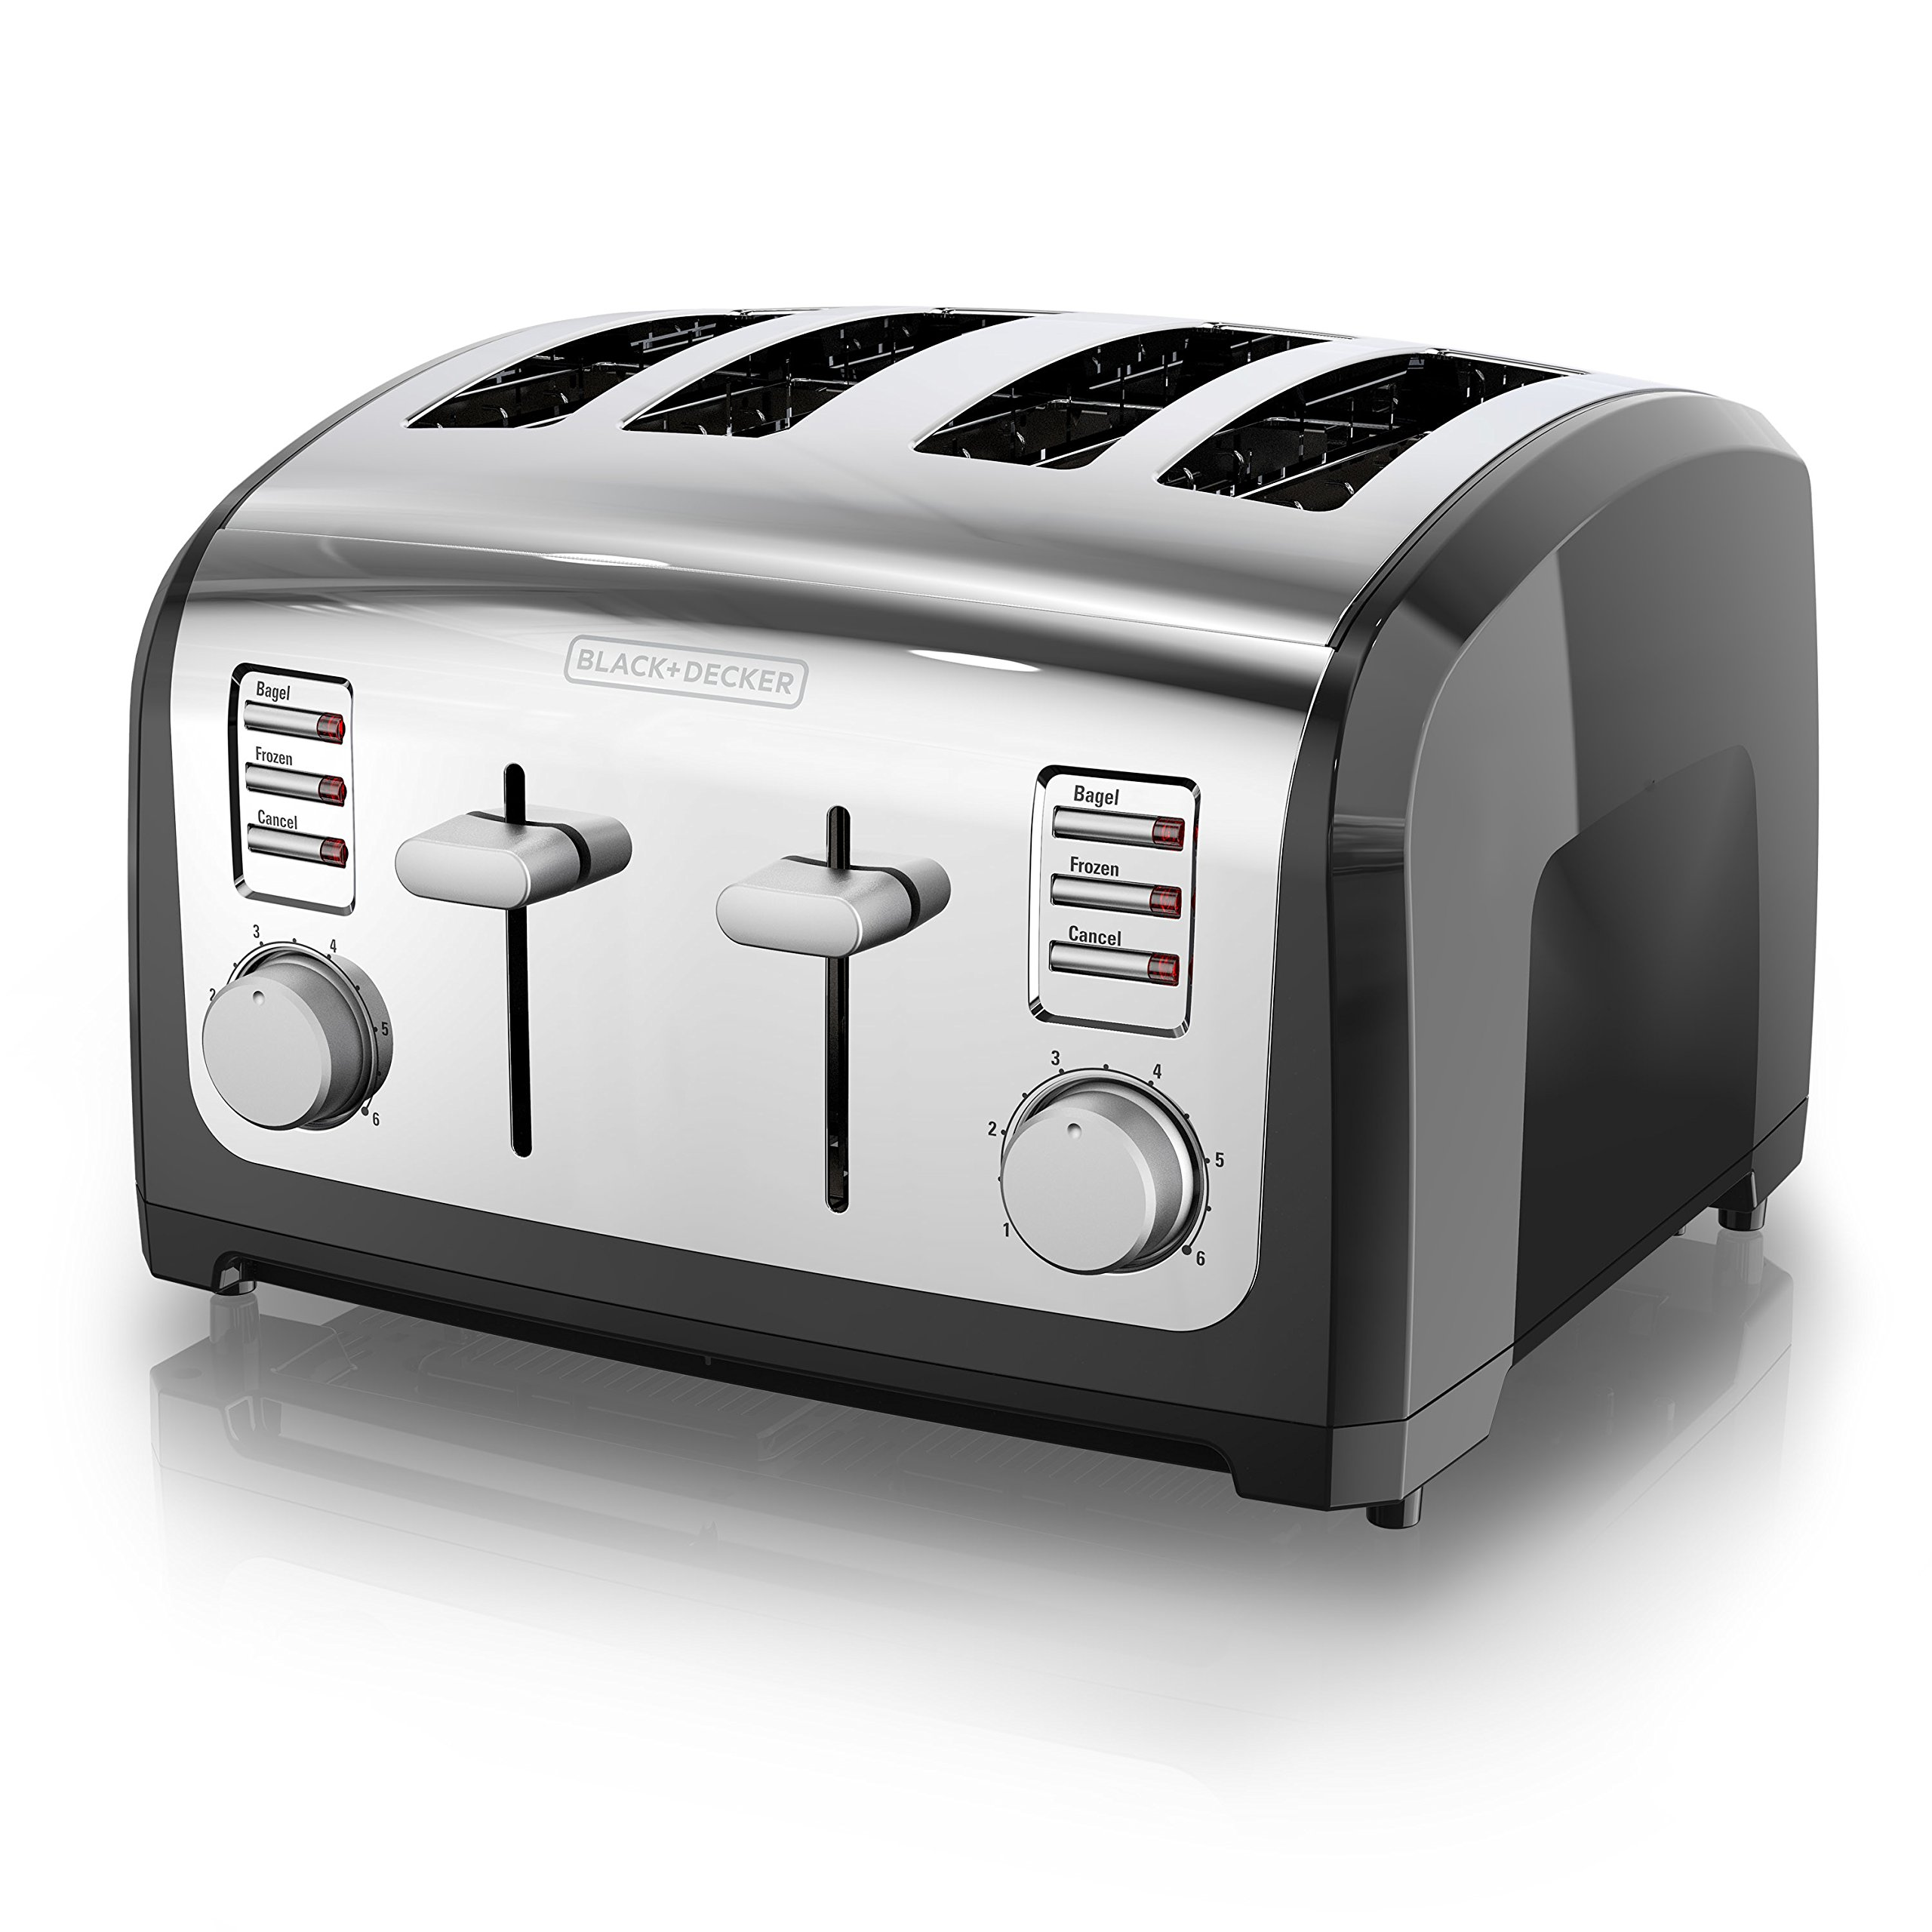 BLACK+DECKER 4-Slice Toaster, Stainless Steel, T4030 by BLACK+DECKER